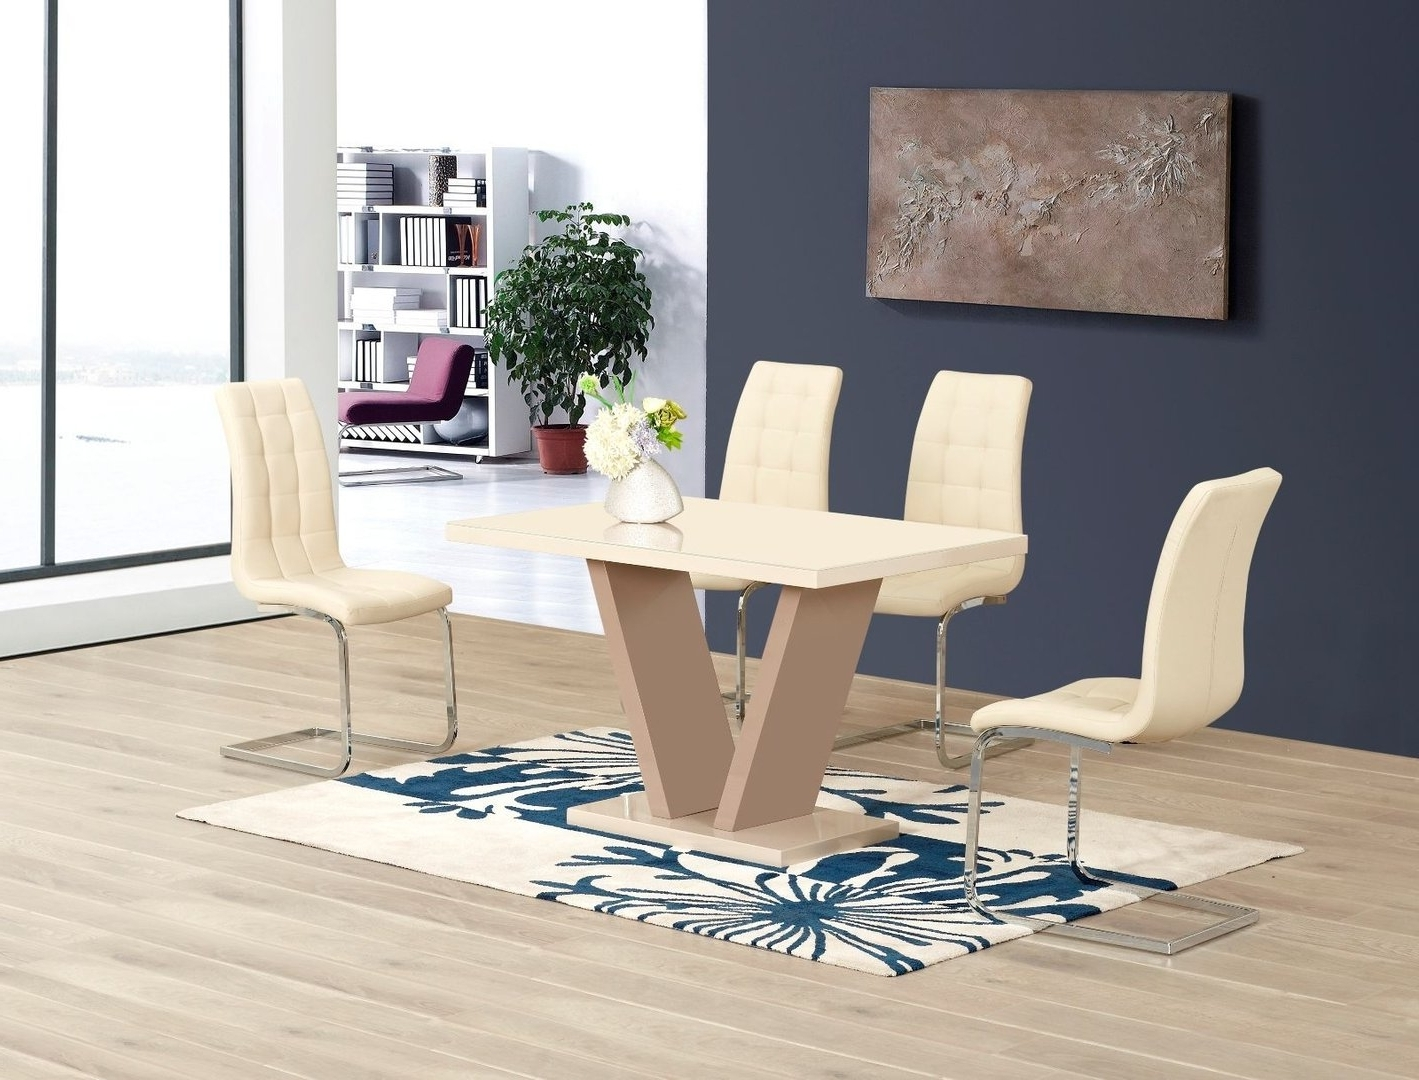 Most Up To Date Cream High Gloss Glass Dining Table And 6 Chairs – Homegenies In Cream Gloss Dining Tables And Chairs (View 20 of 25)